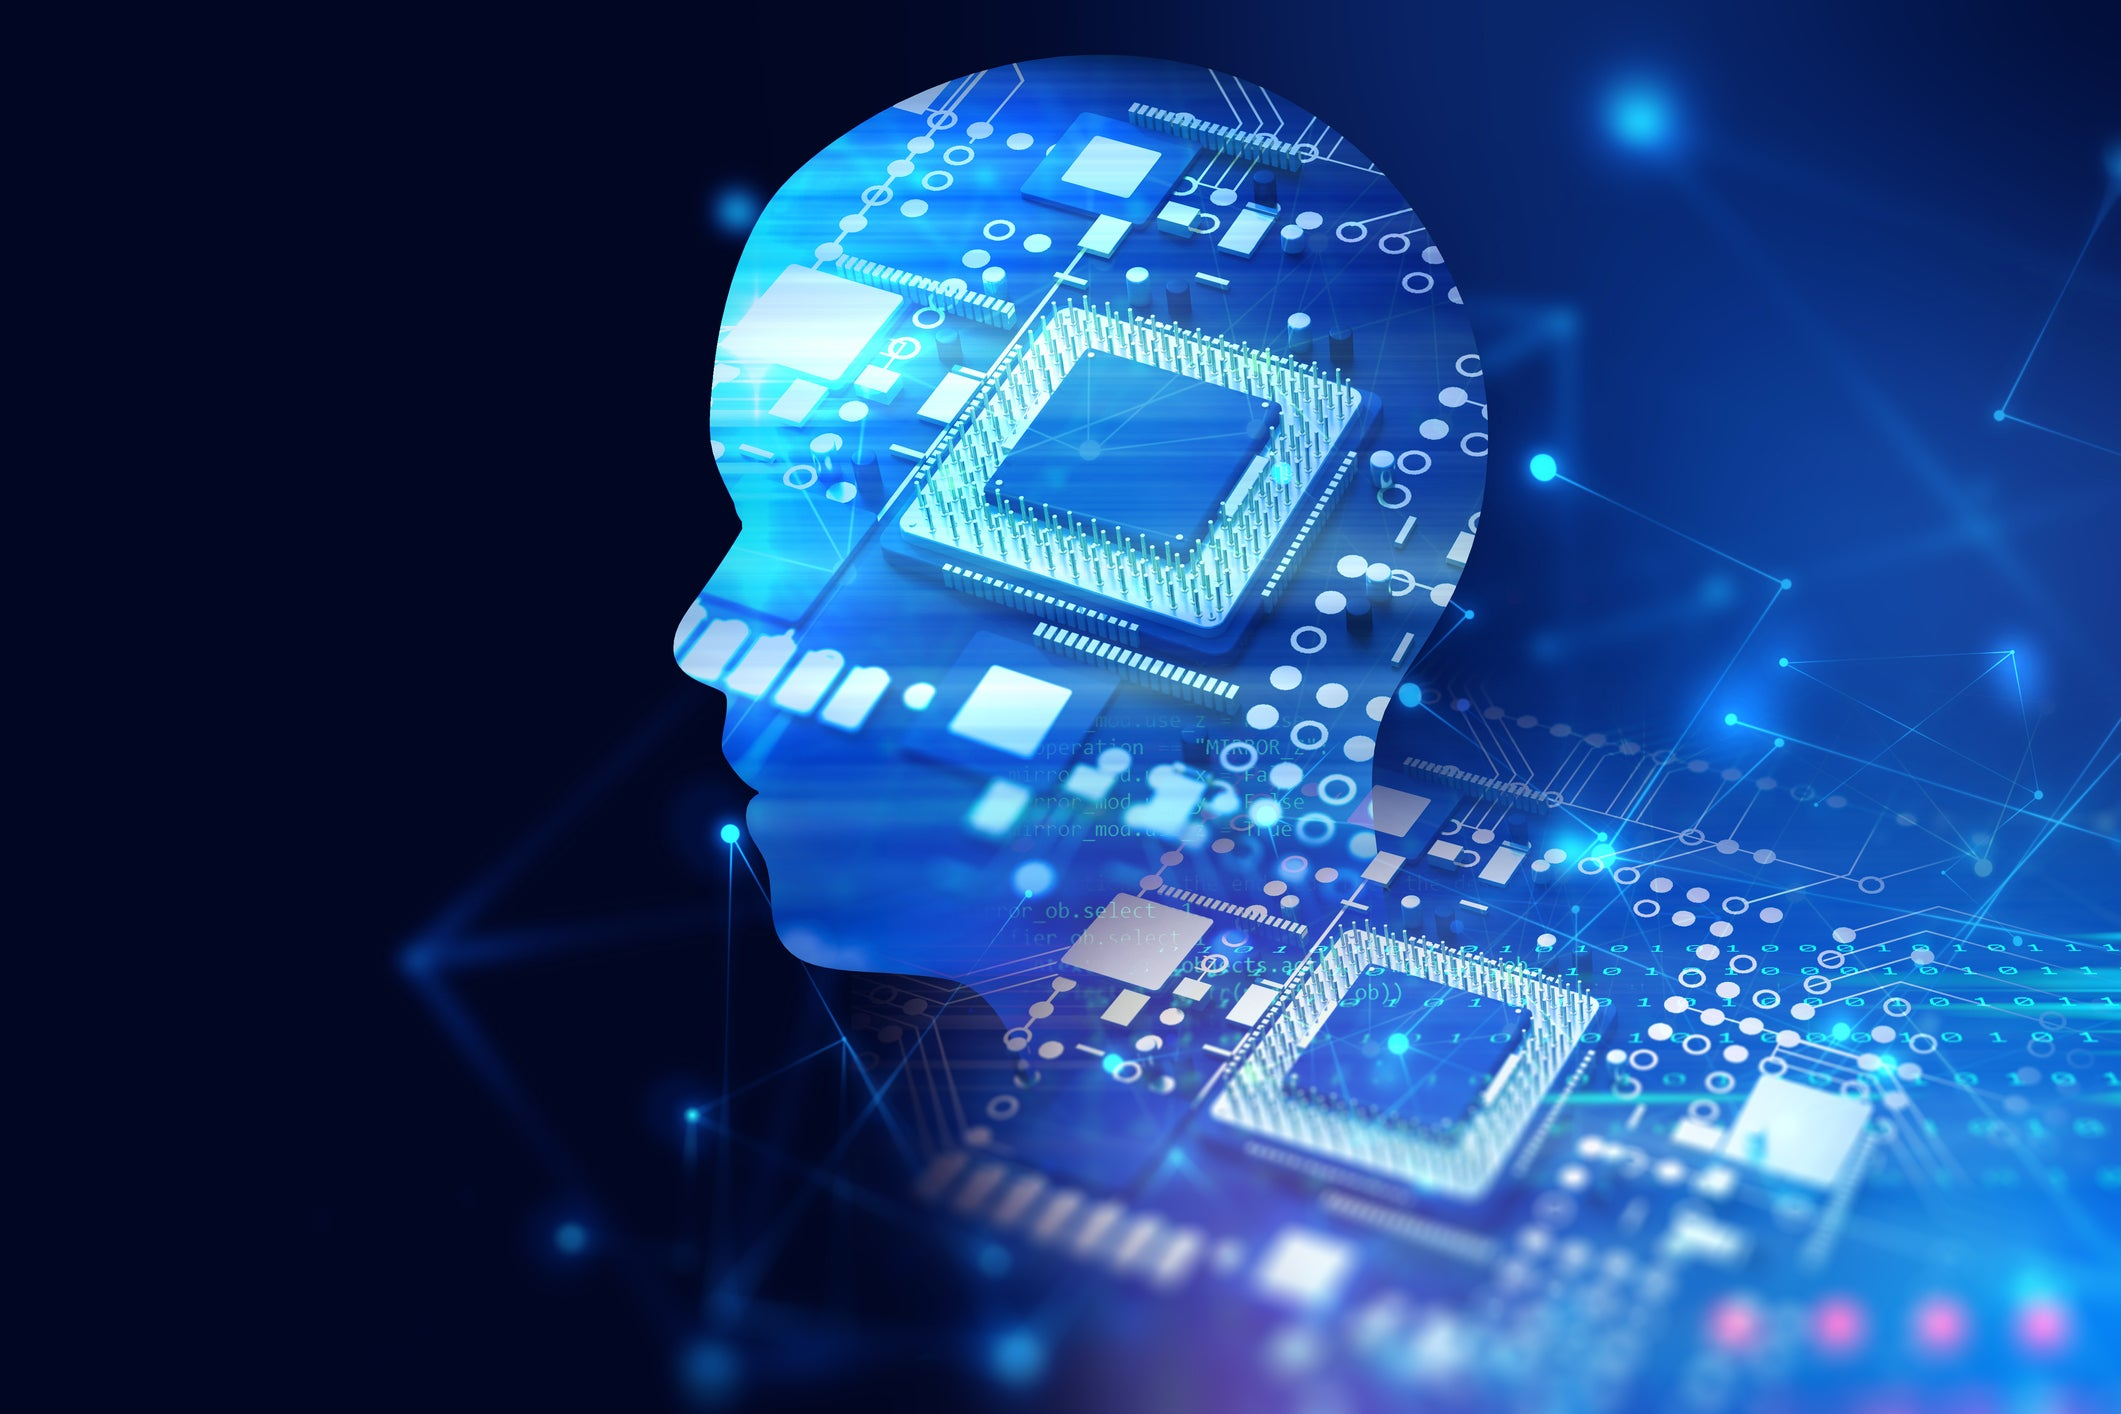 3 Best Artificial Intelligence Stocks To Buy Now The Motley Fool